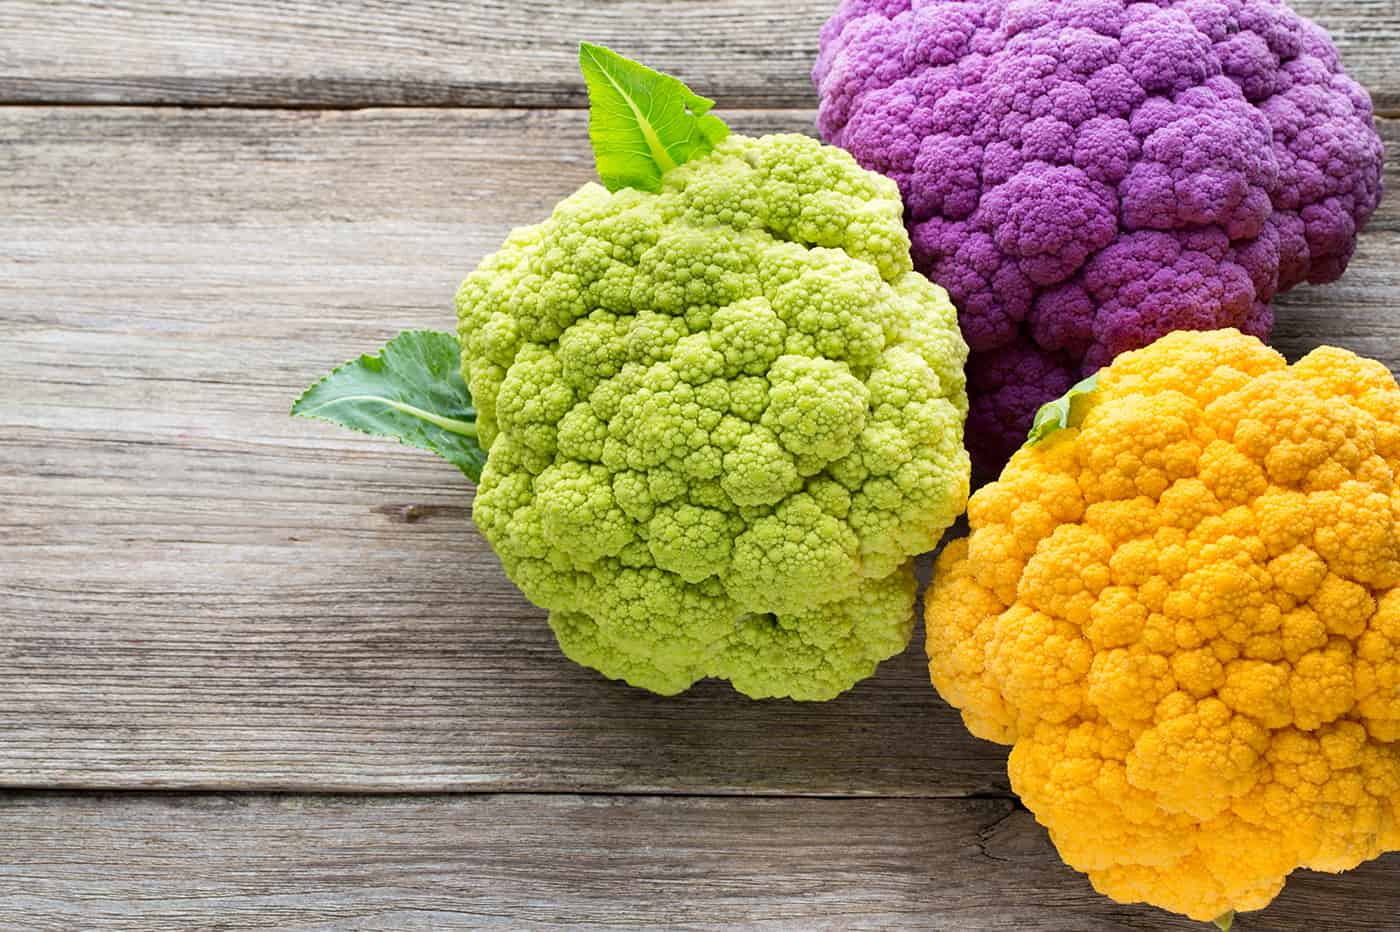 Rainbow of organic cauliflower on the wooden table.